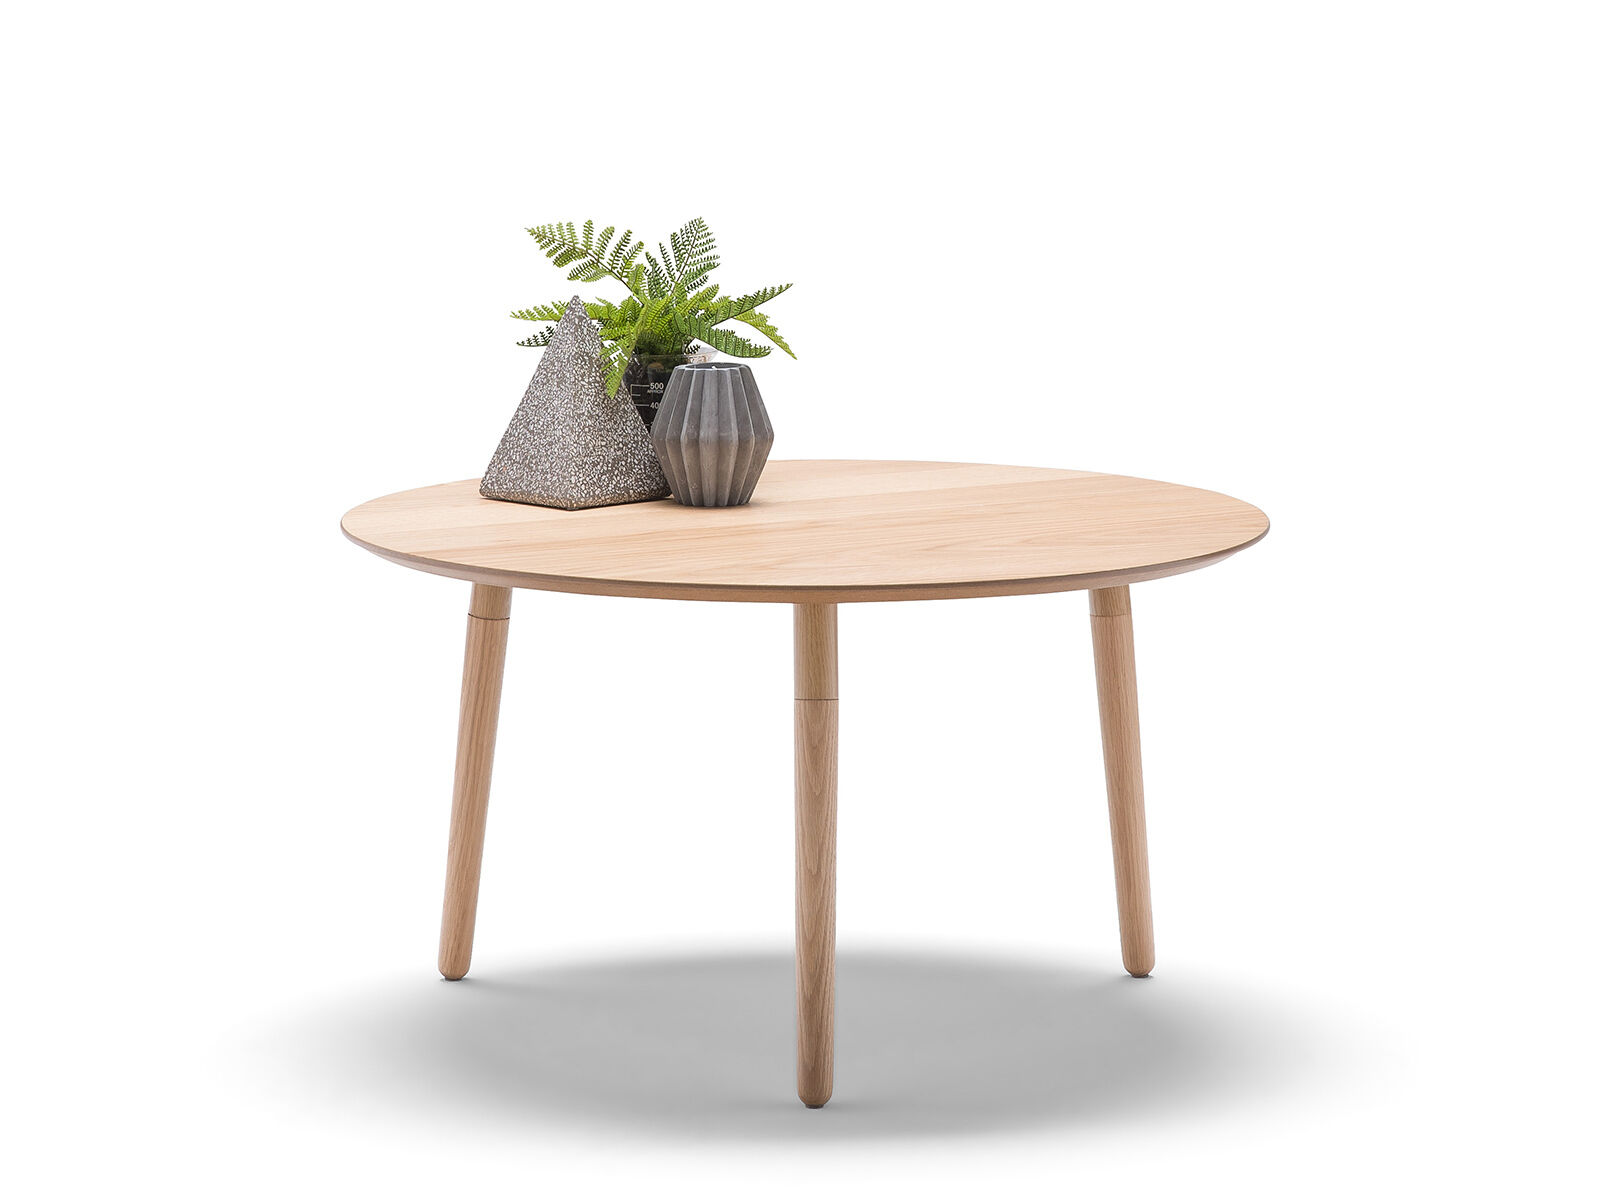 Nochio Scandinavian Nordic Retro Light Oak Timber Round Minimalist